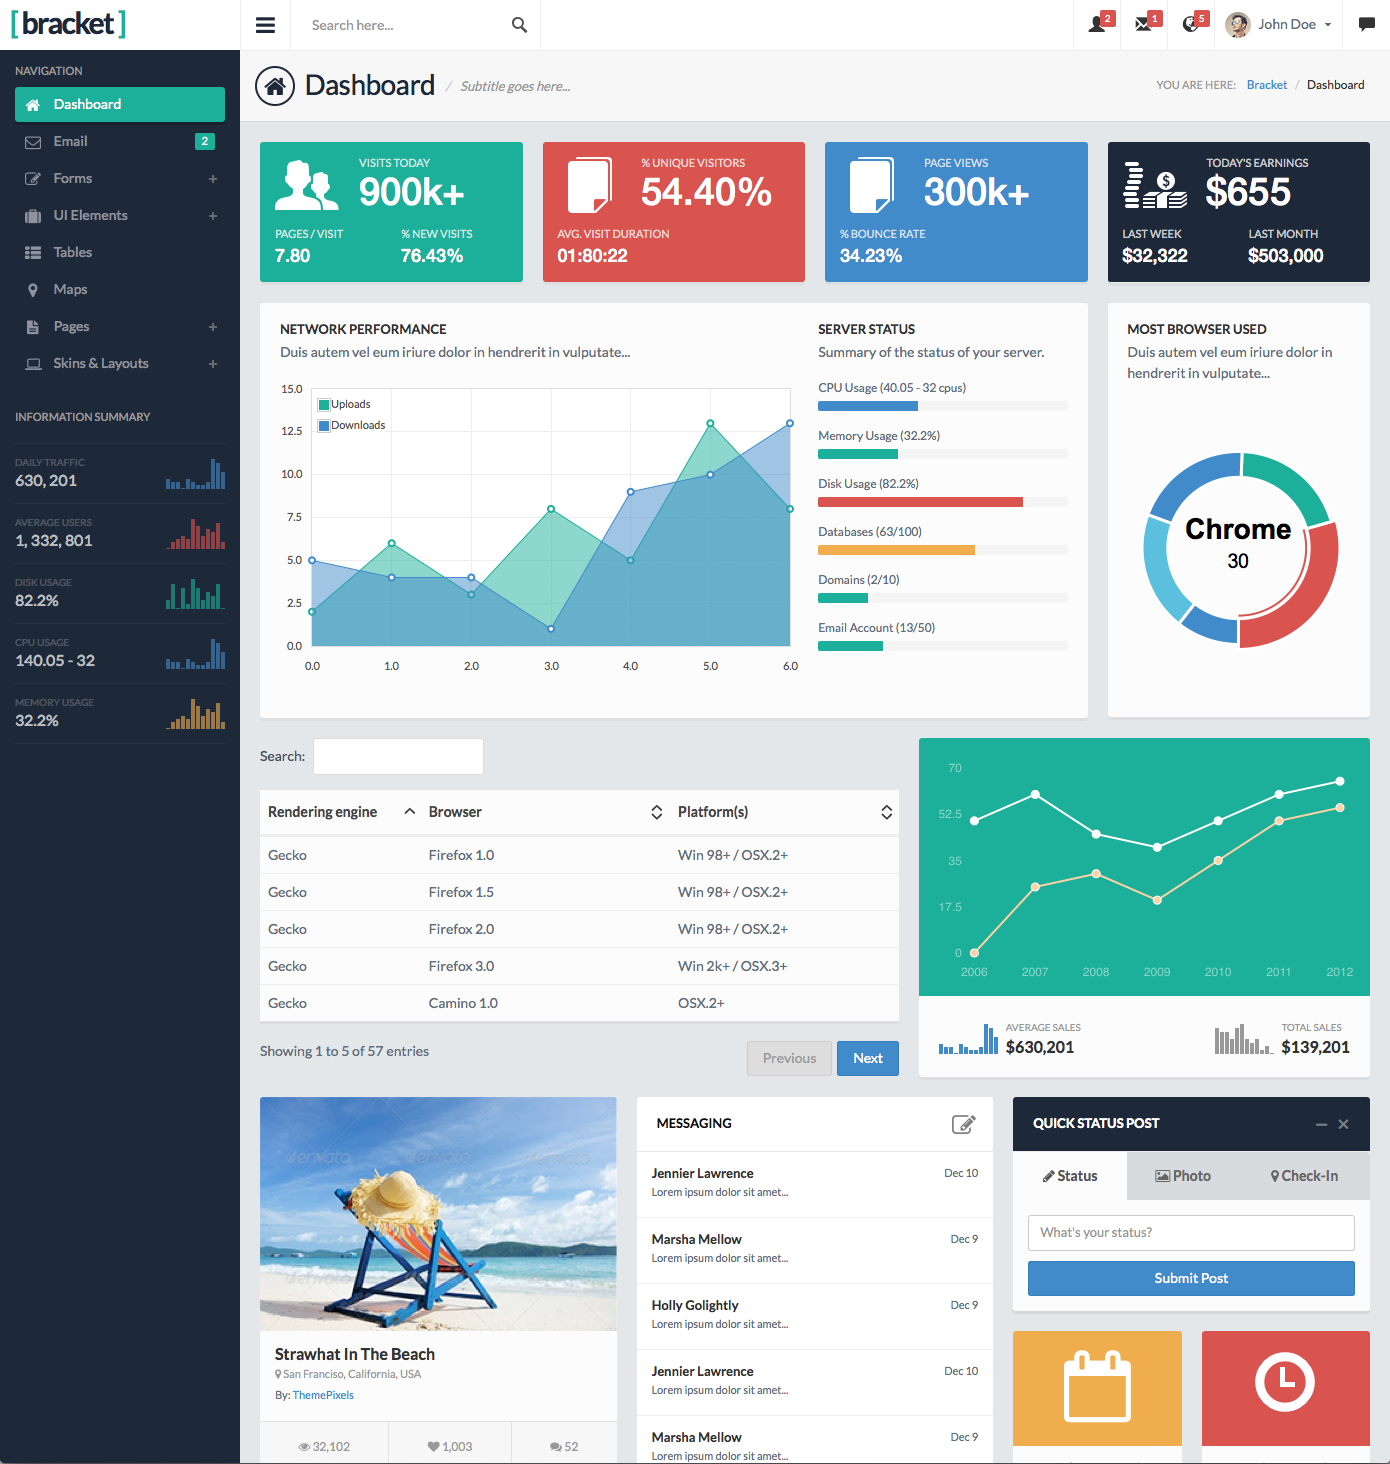 Bracket Dashboard Theme Bootstrap Dashboards Pinterest - Invoice html template bootstrap free download 99 cent store online